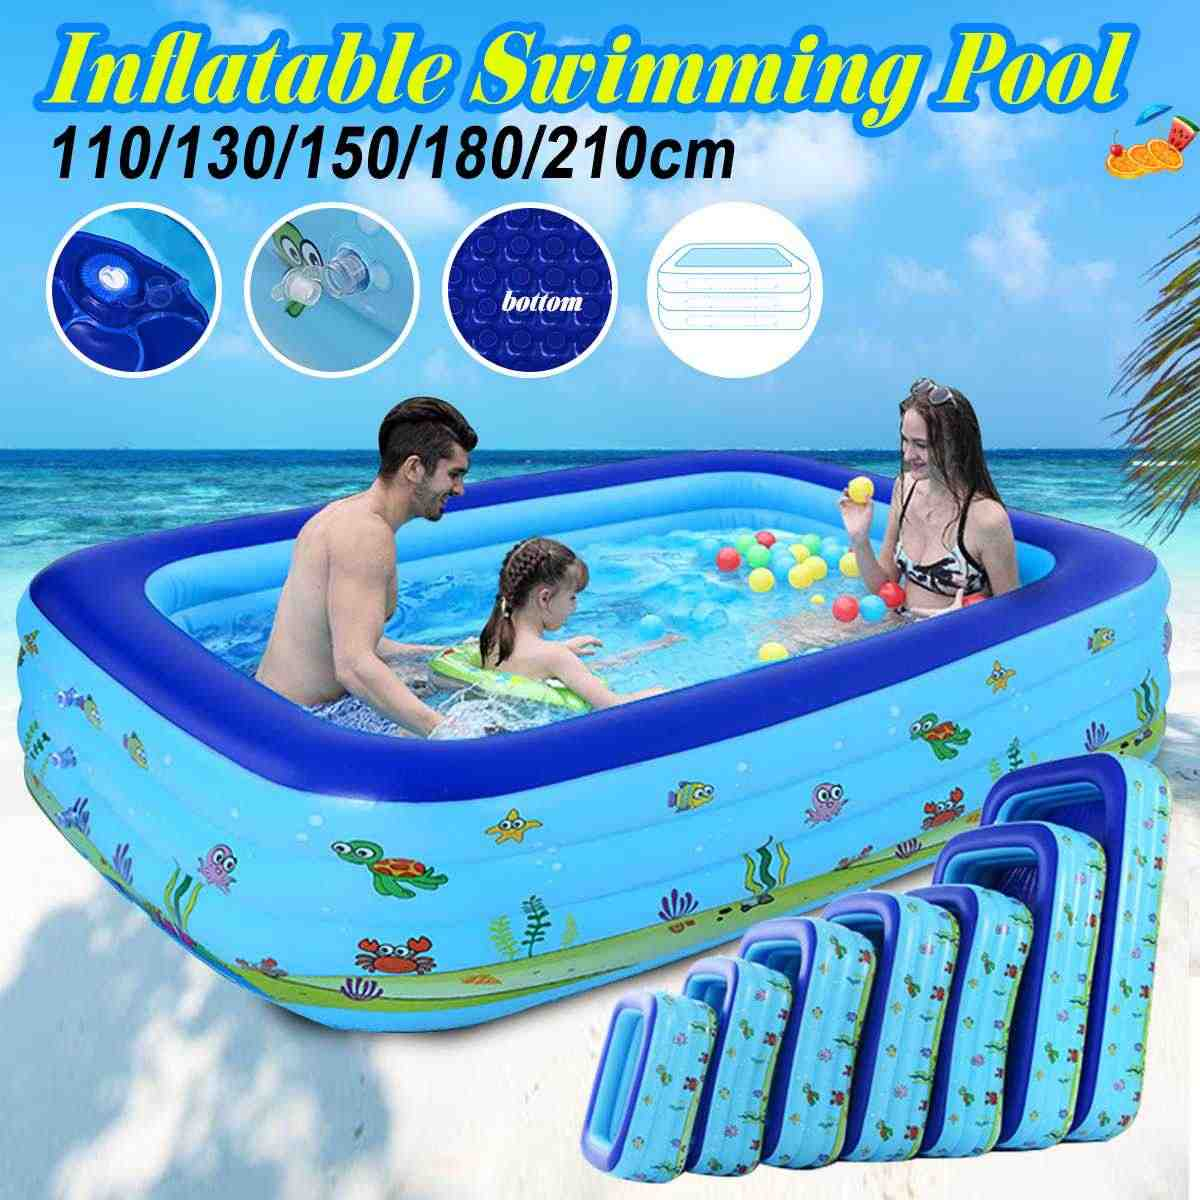 Kids Inflatable Pool Children S Home Use Large Size Square Swimming Pool For Baby Non Toxic And Durable 110 130 150 180 210 Swimming Pool Aliexpress